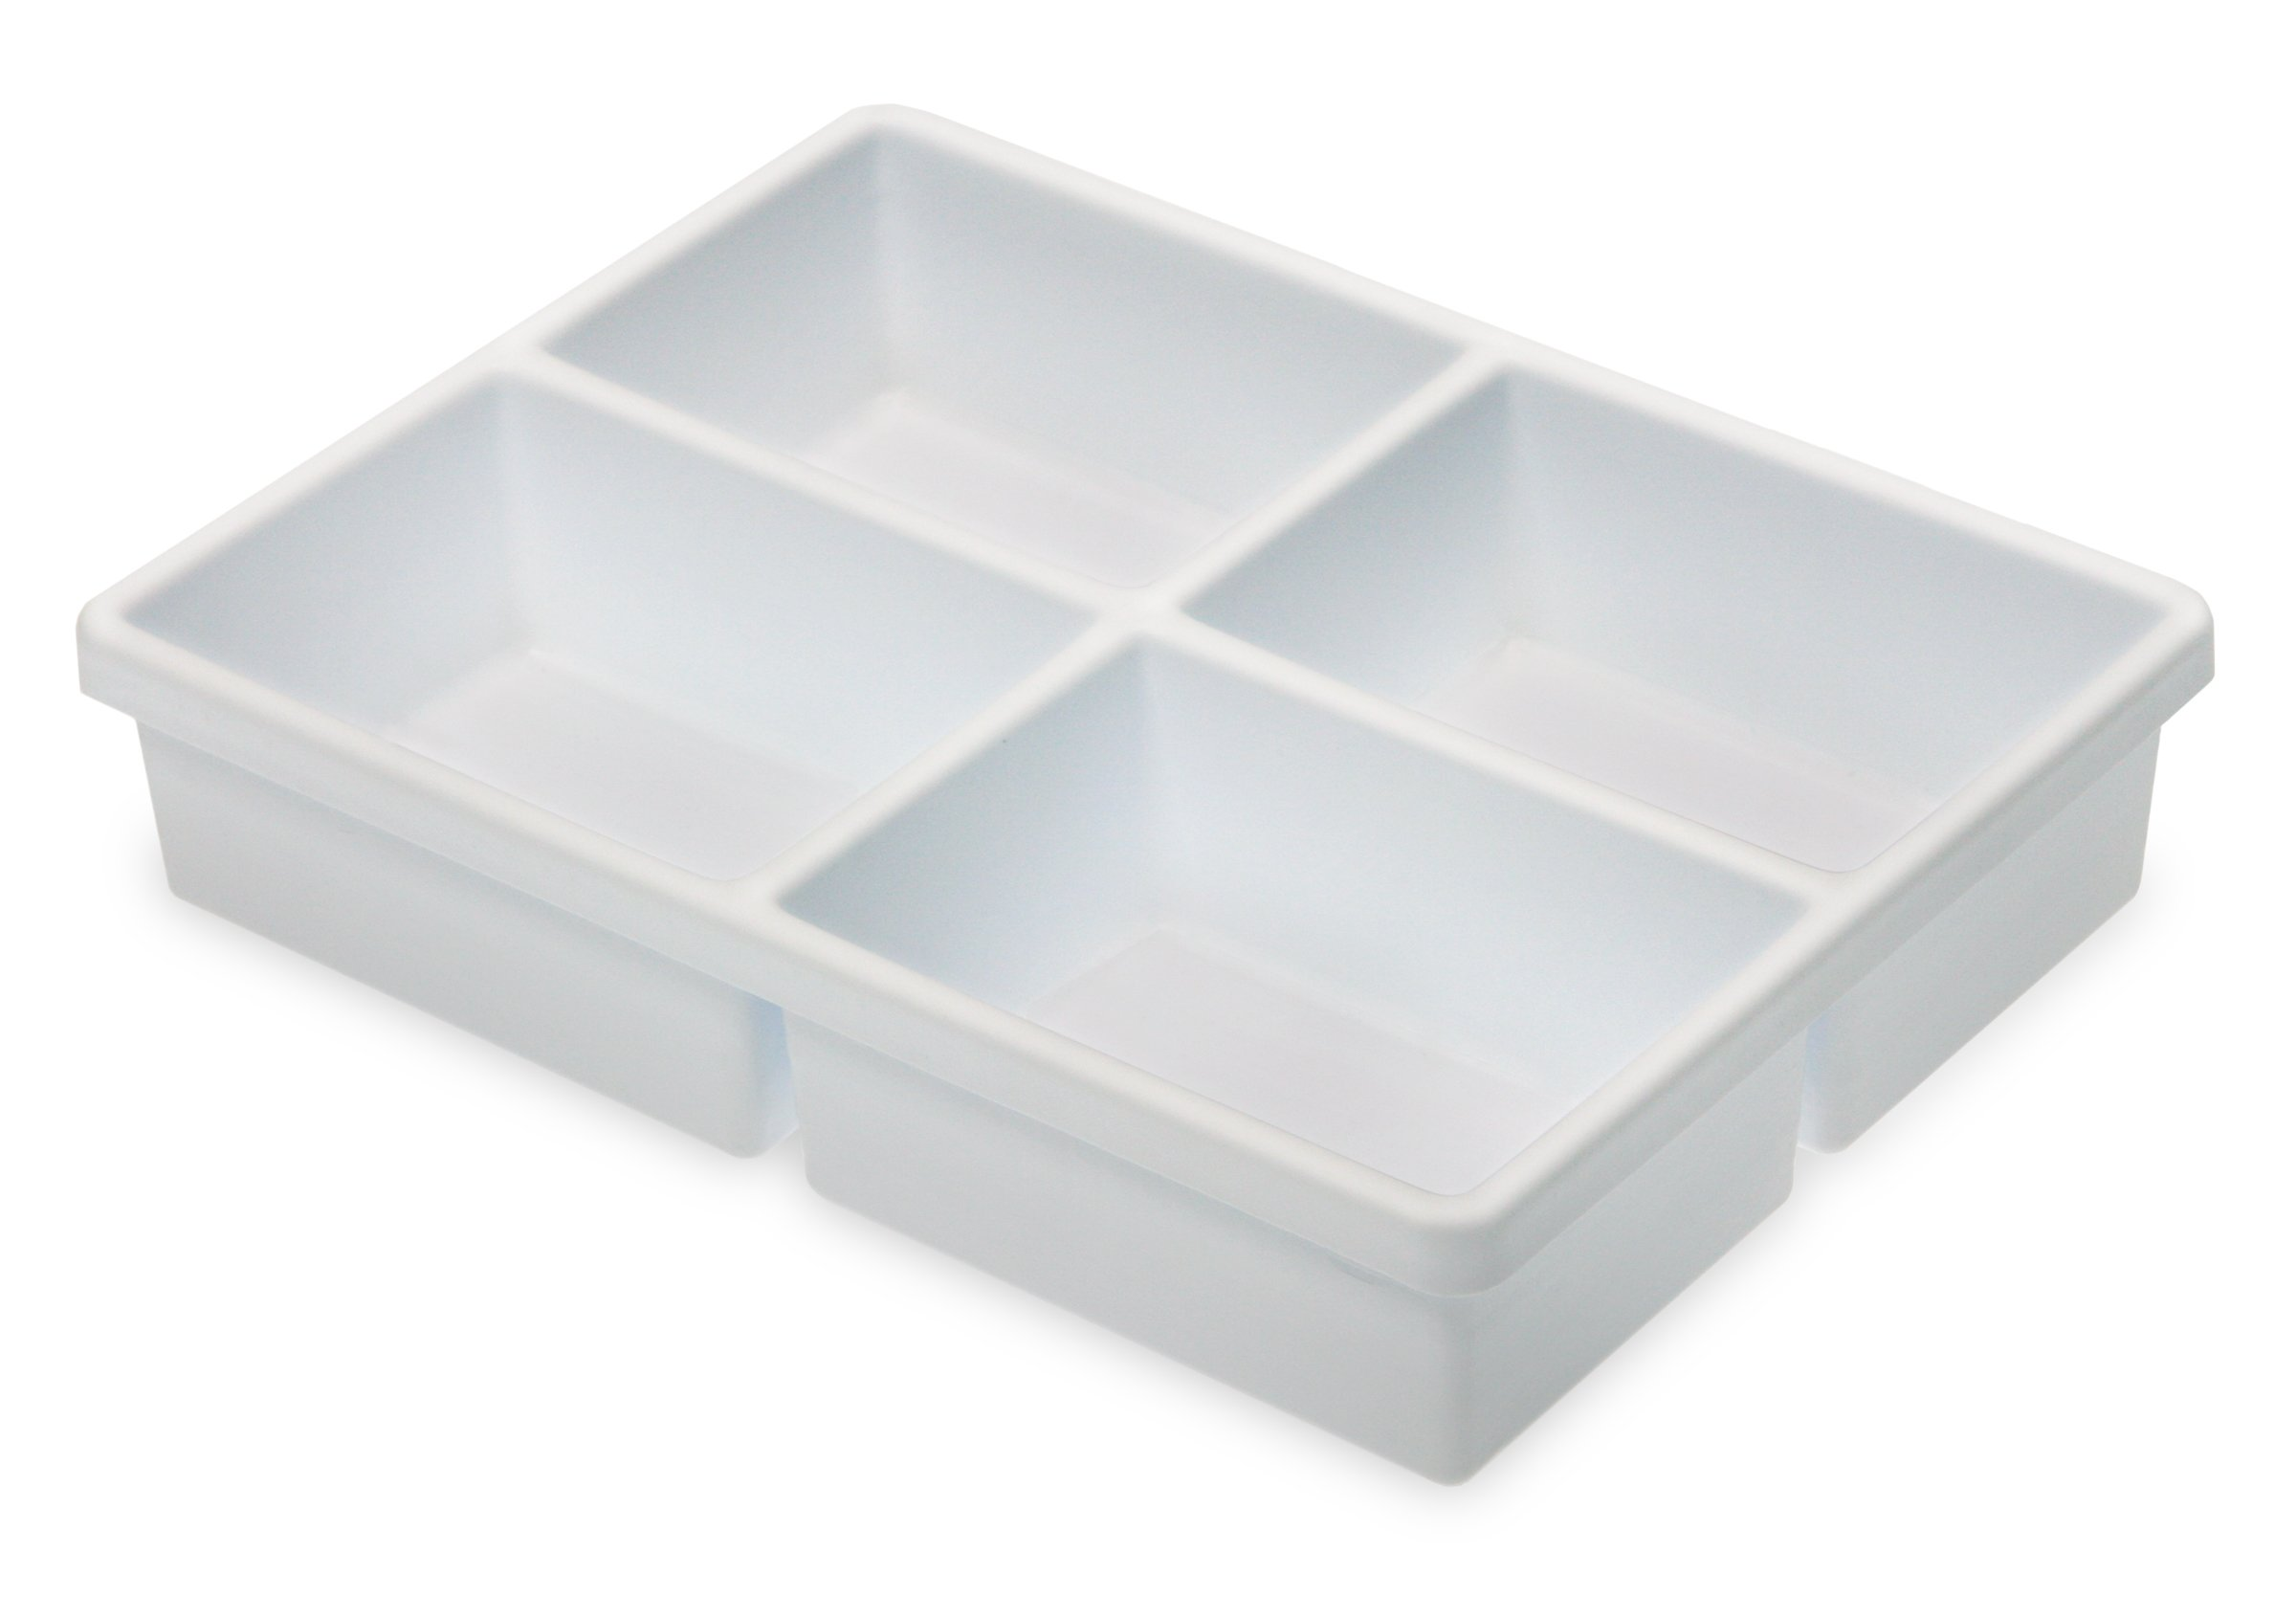 TrippNT 50917 High Impact Styrene 4 Compartment Drawer Organizer, 11-5/8'' Width x 2-3/8'' Height x 15-5/8'' Depth by TrippNT